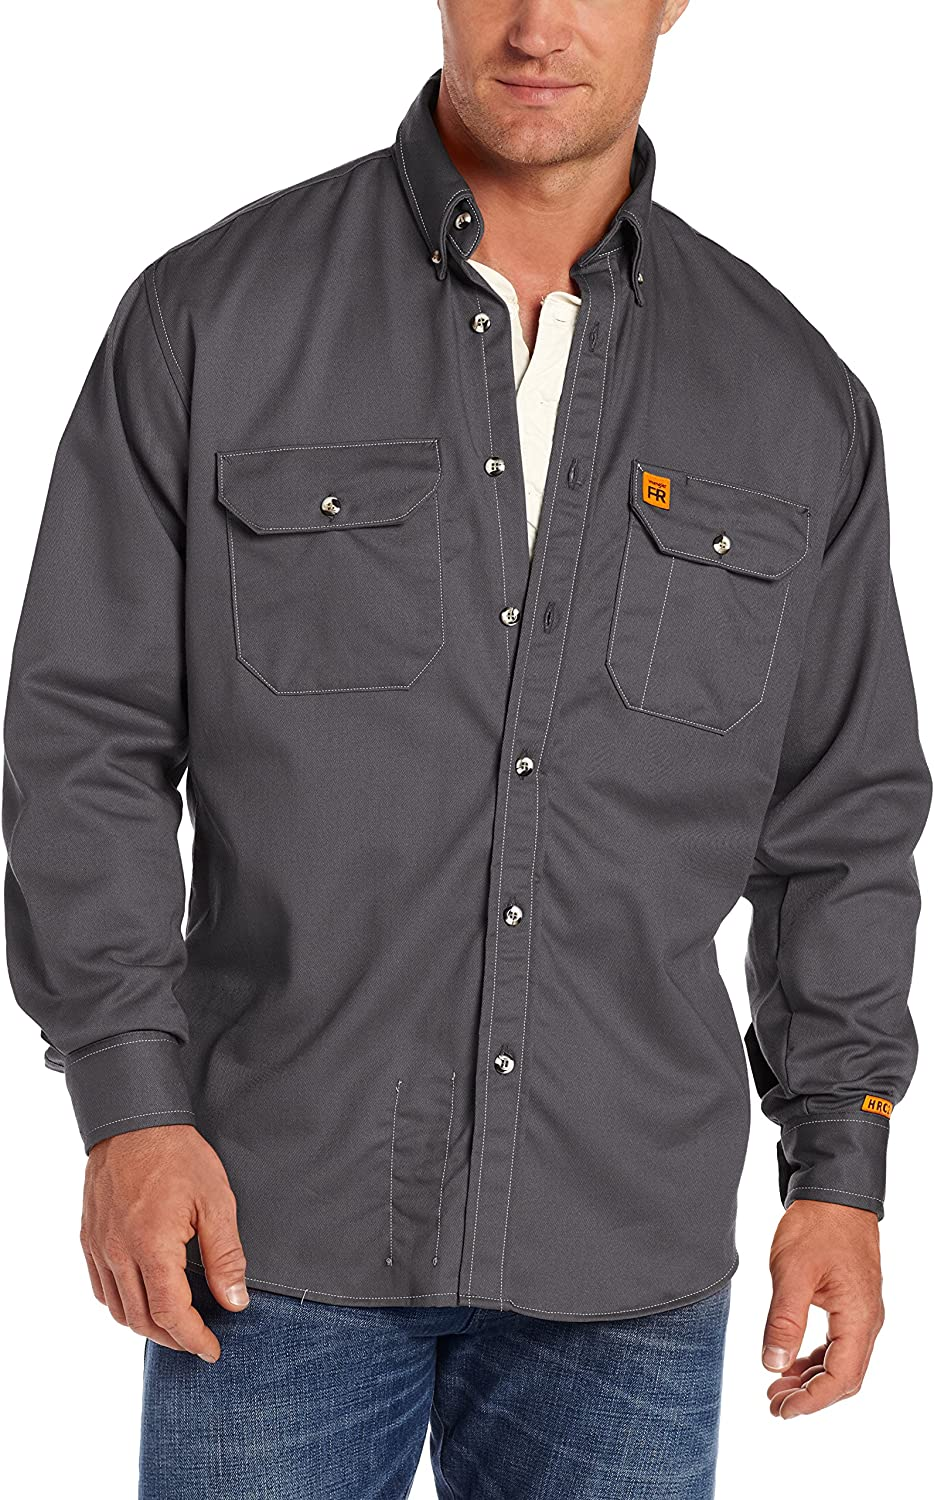 Max 63% OFF Wrangler Riggs Workwear Men's Fr Two Flame Resistant Long Sleeve Fixed price for sale